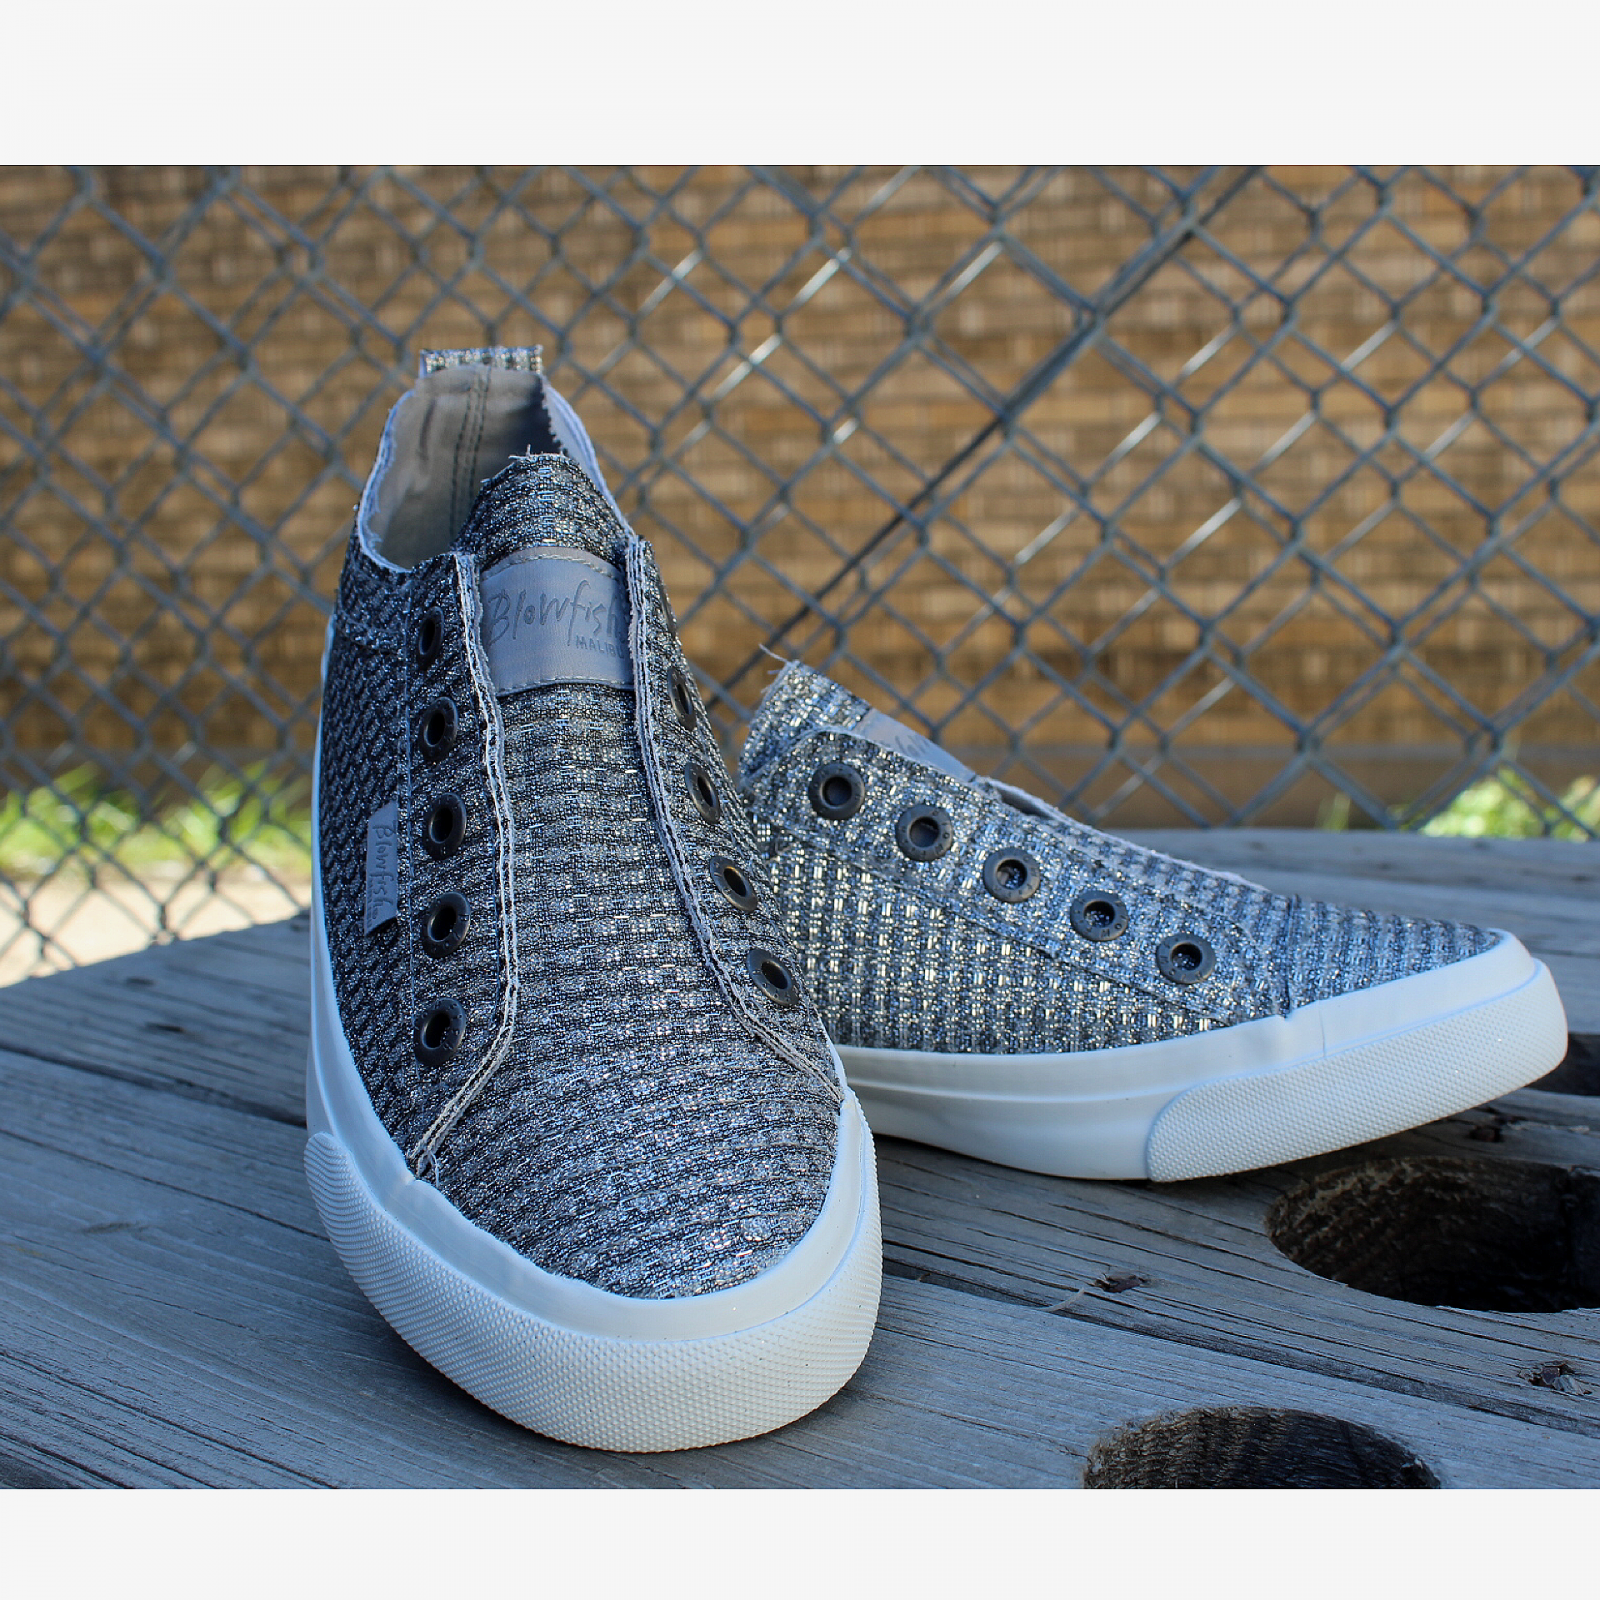 Playwire Shoe from Blowfish